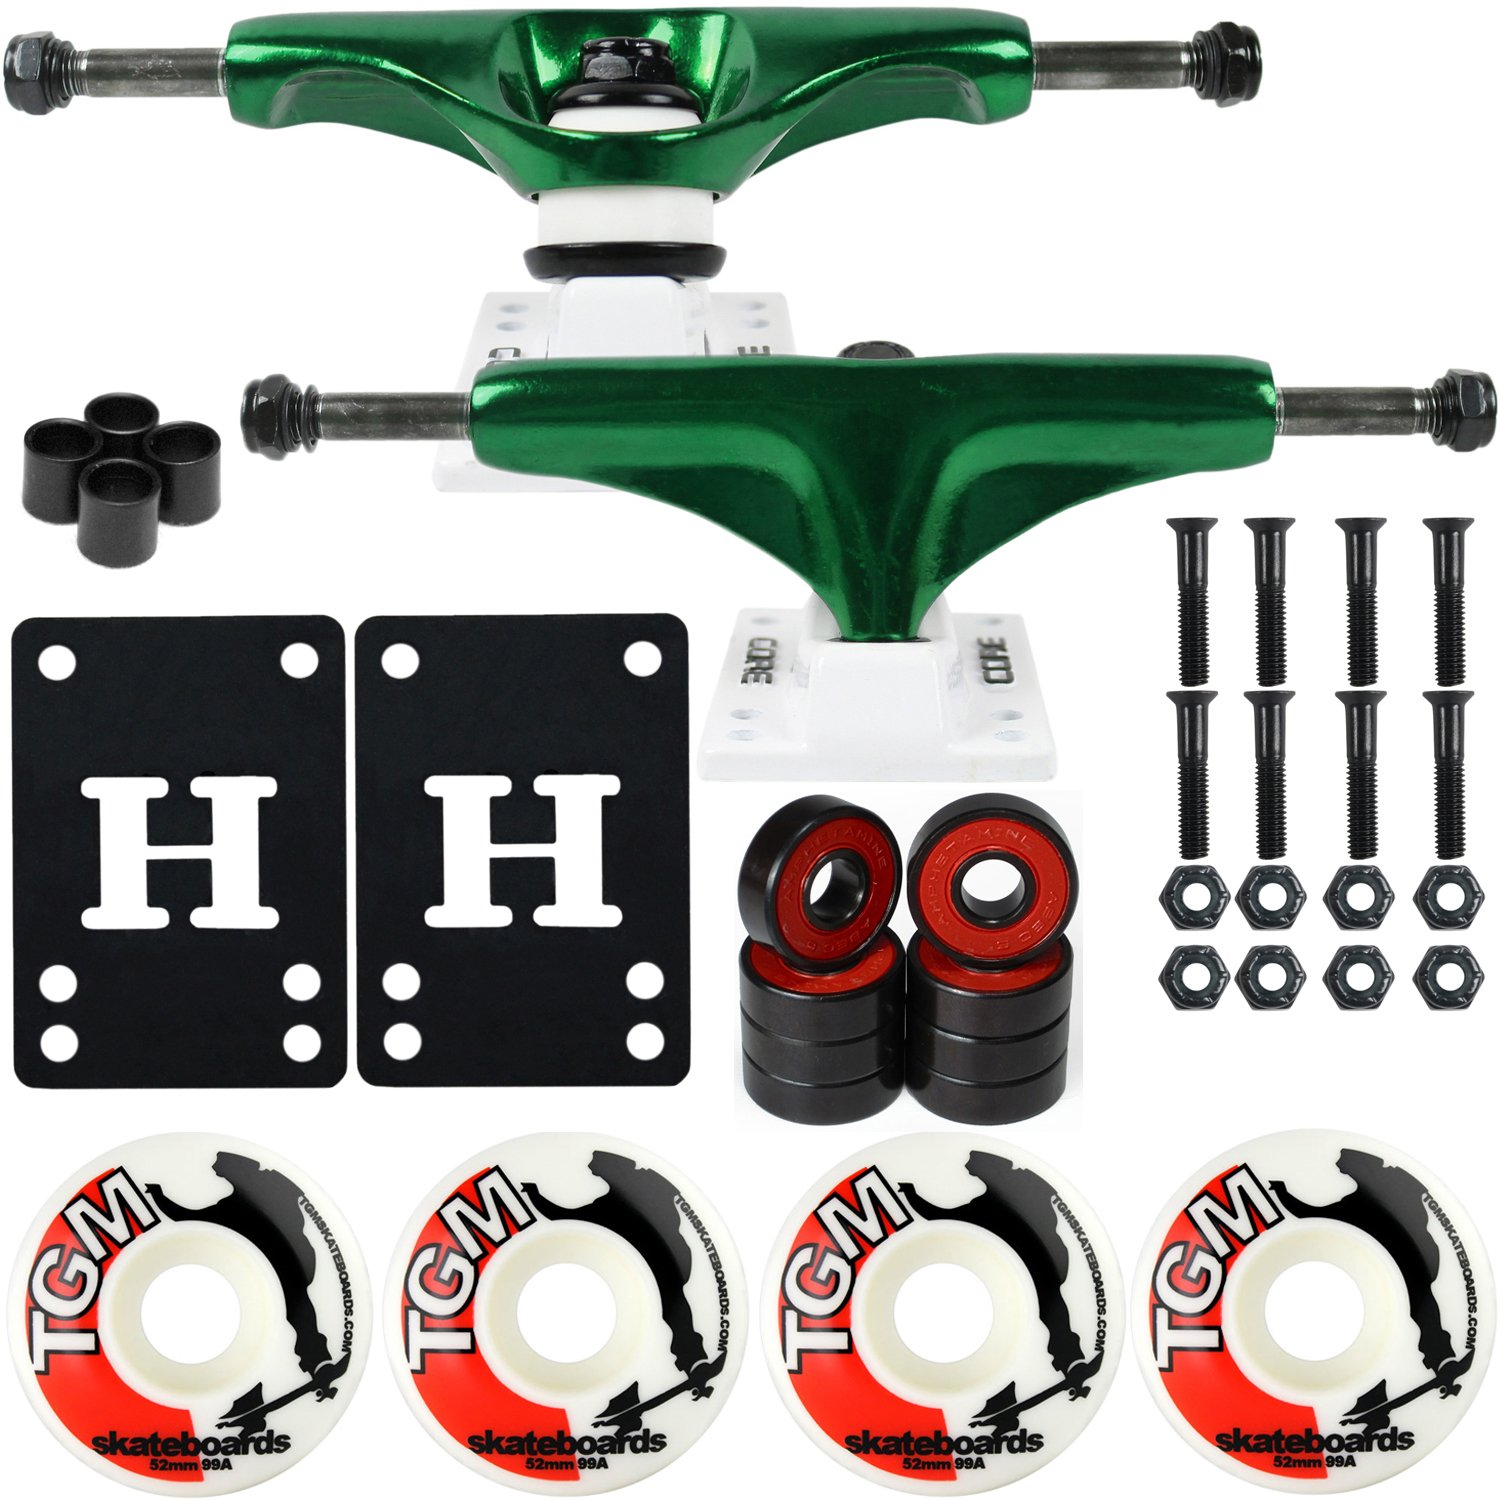 CORE Skateboard Package 5.0'' Trucks 52mm with White Wheels + Components (Metallic Green Hanger/White Base) by CORE